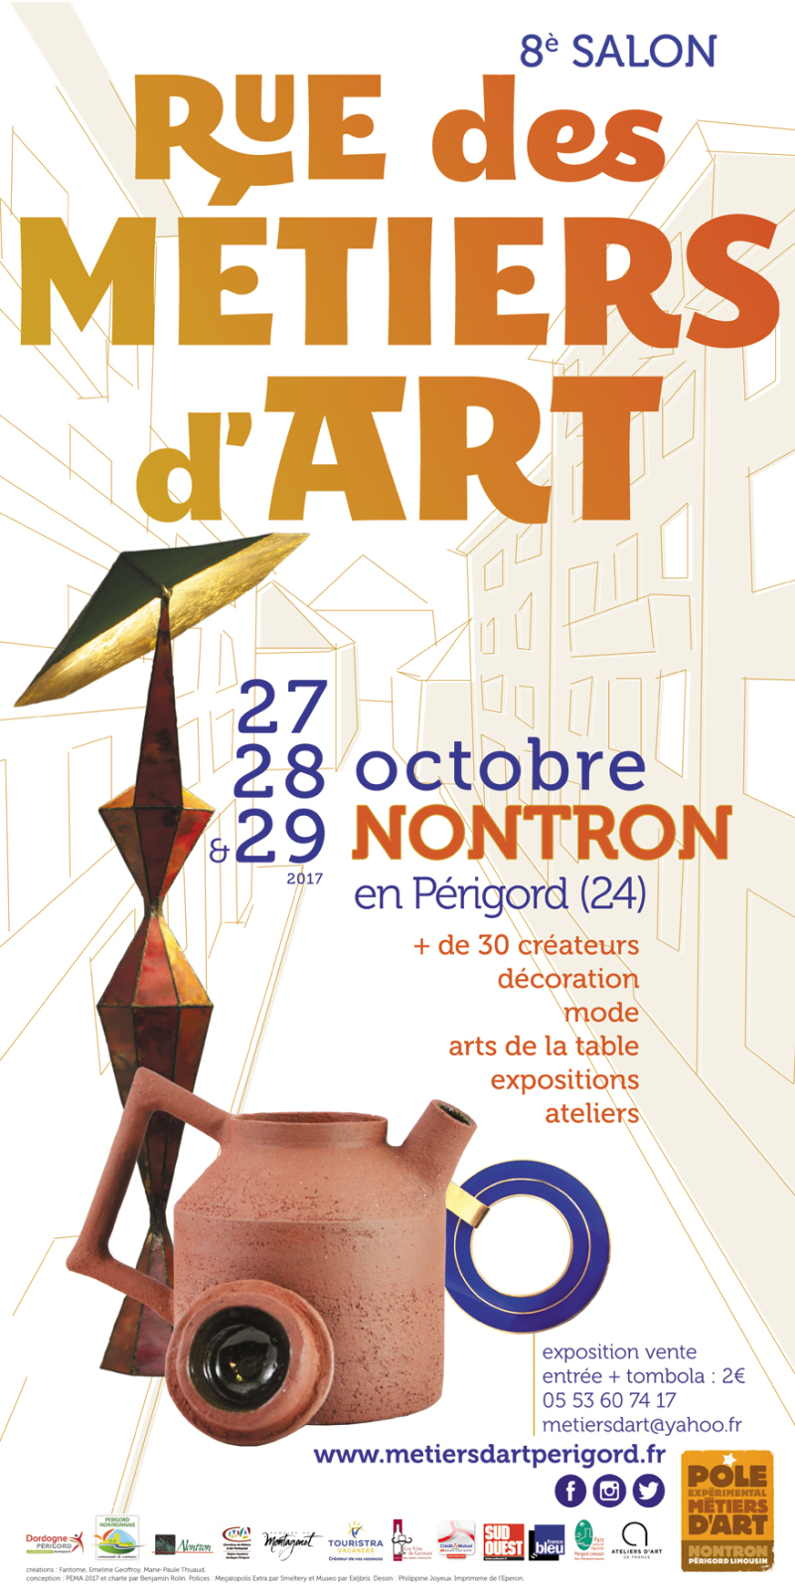 Salon art de la table 2017